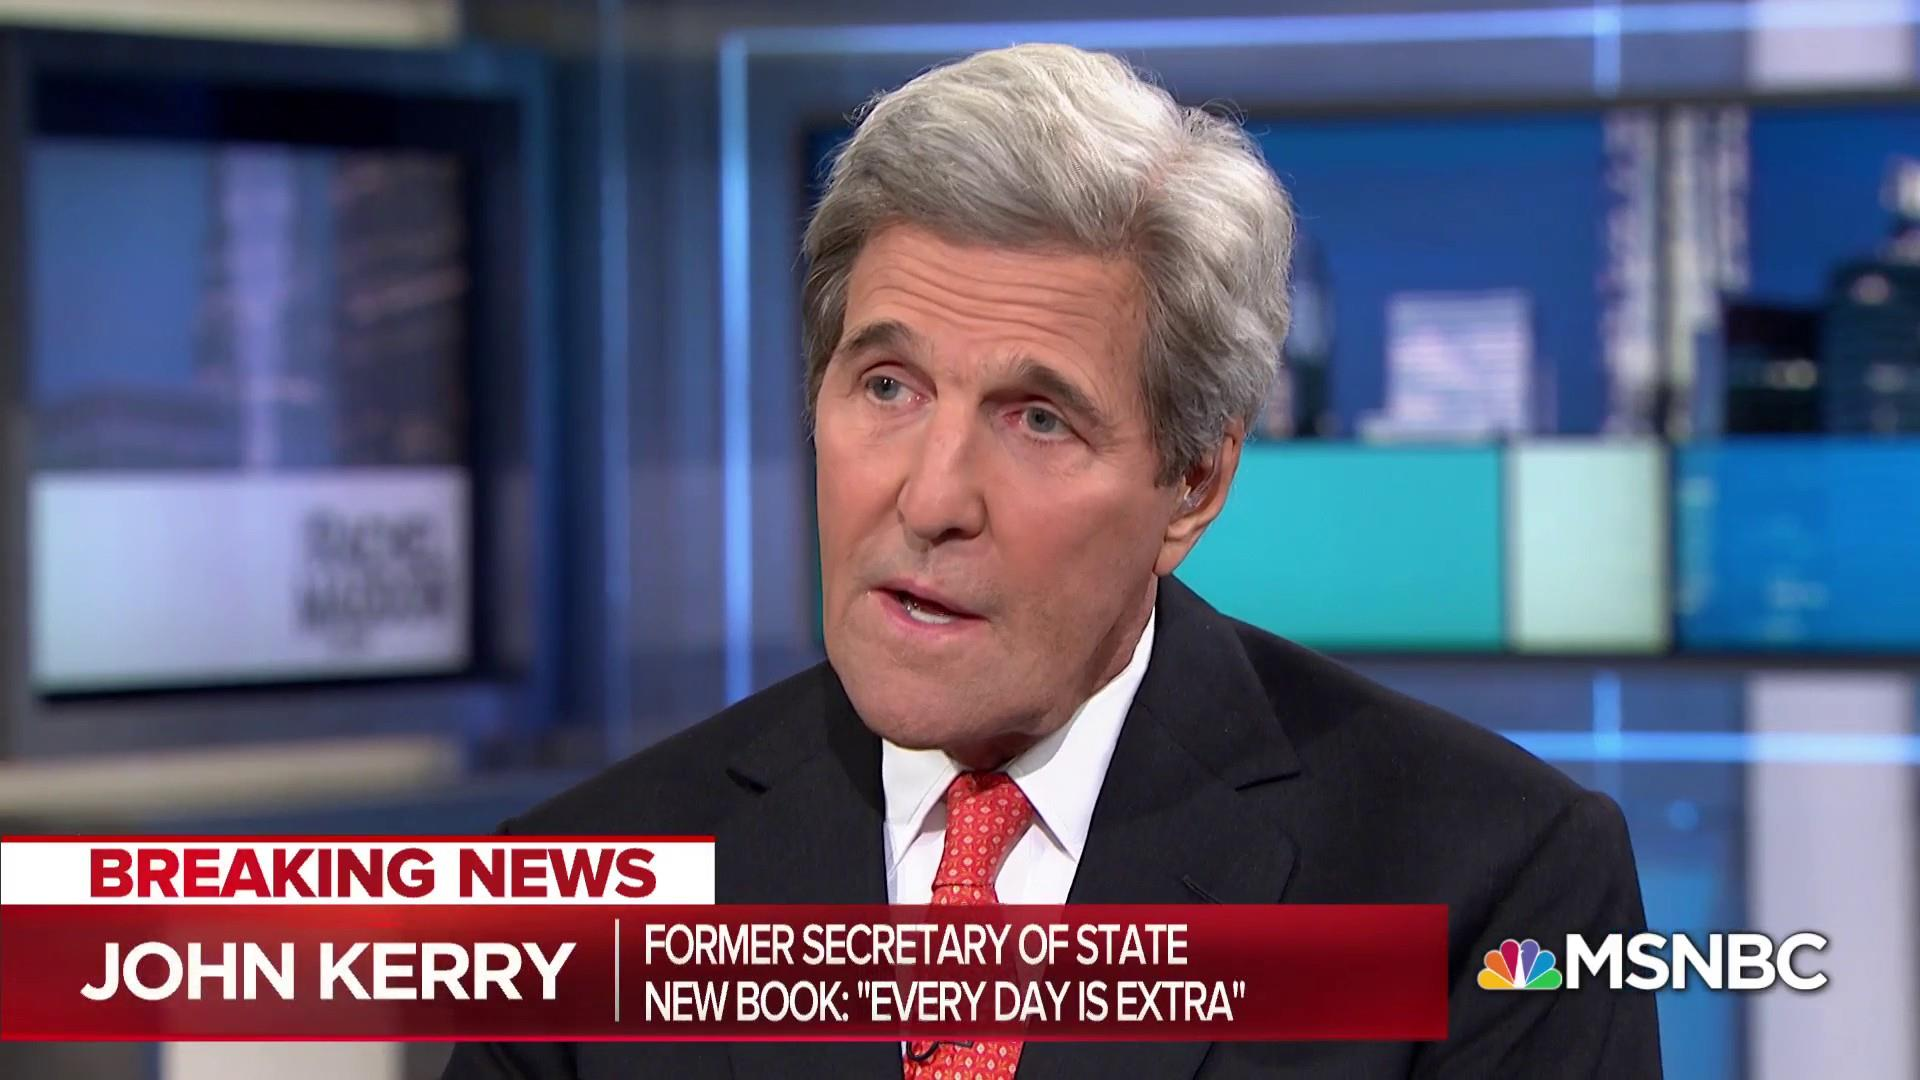 Kerry slams Trump over fact-free policymaking